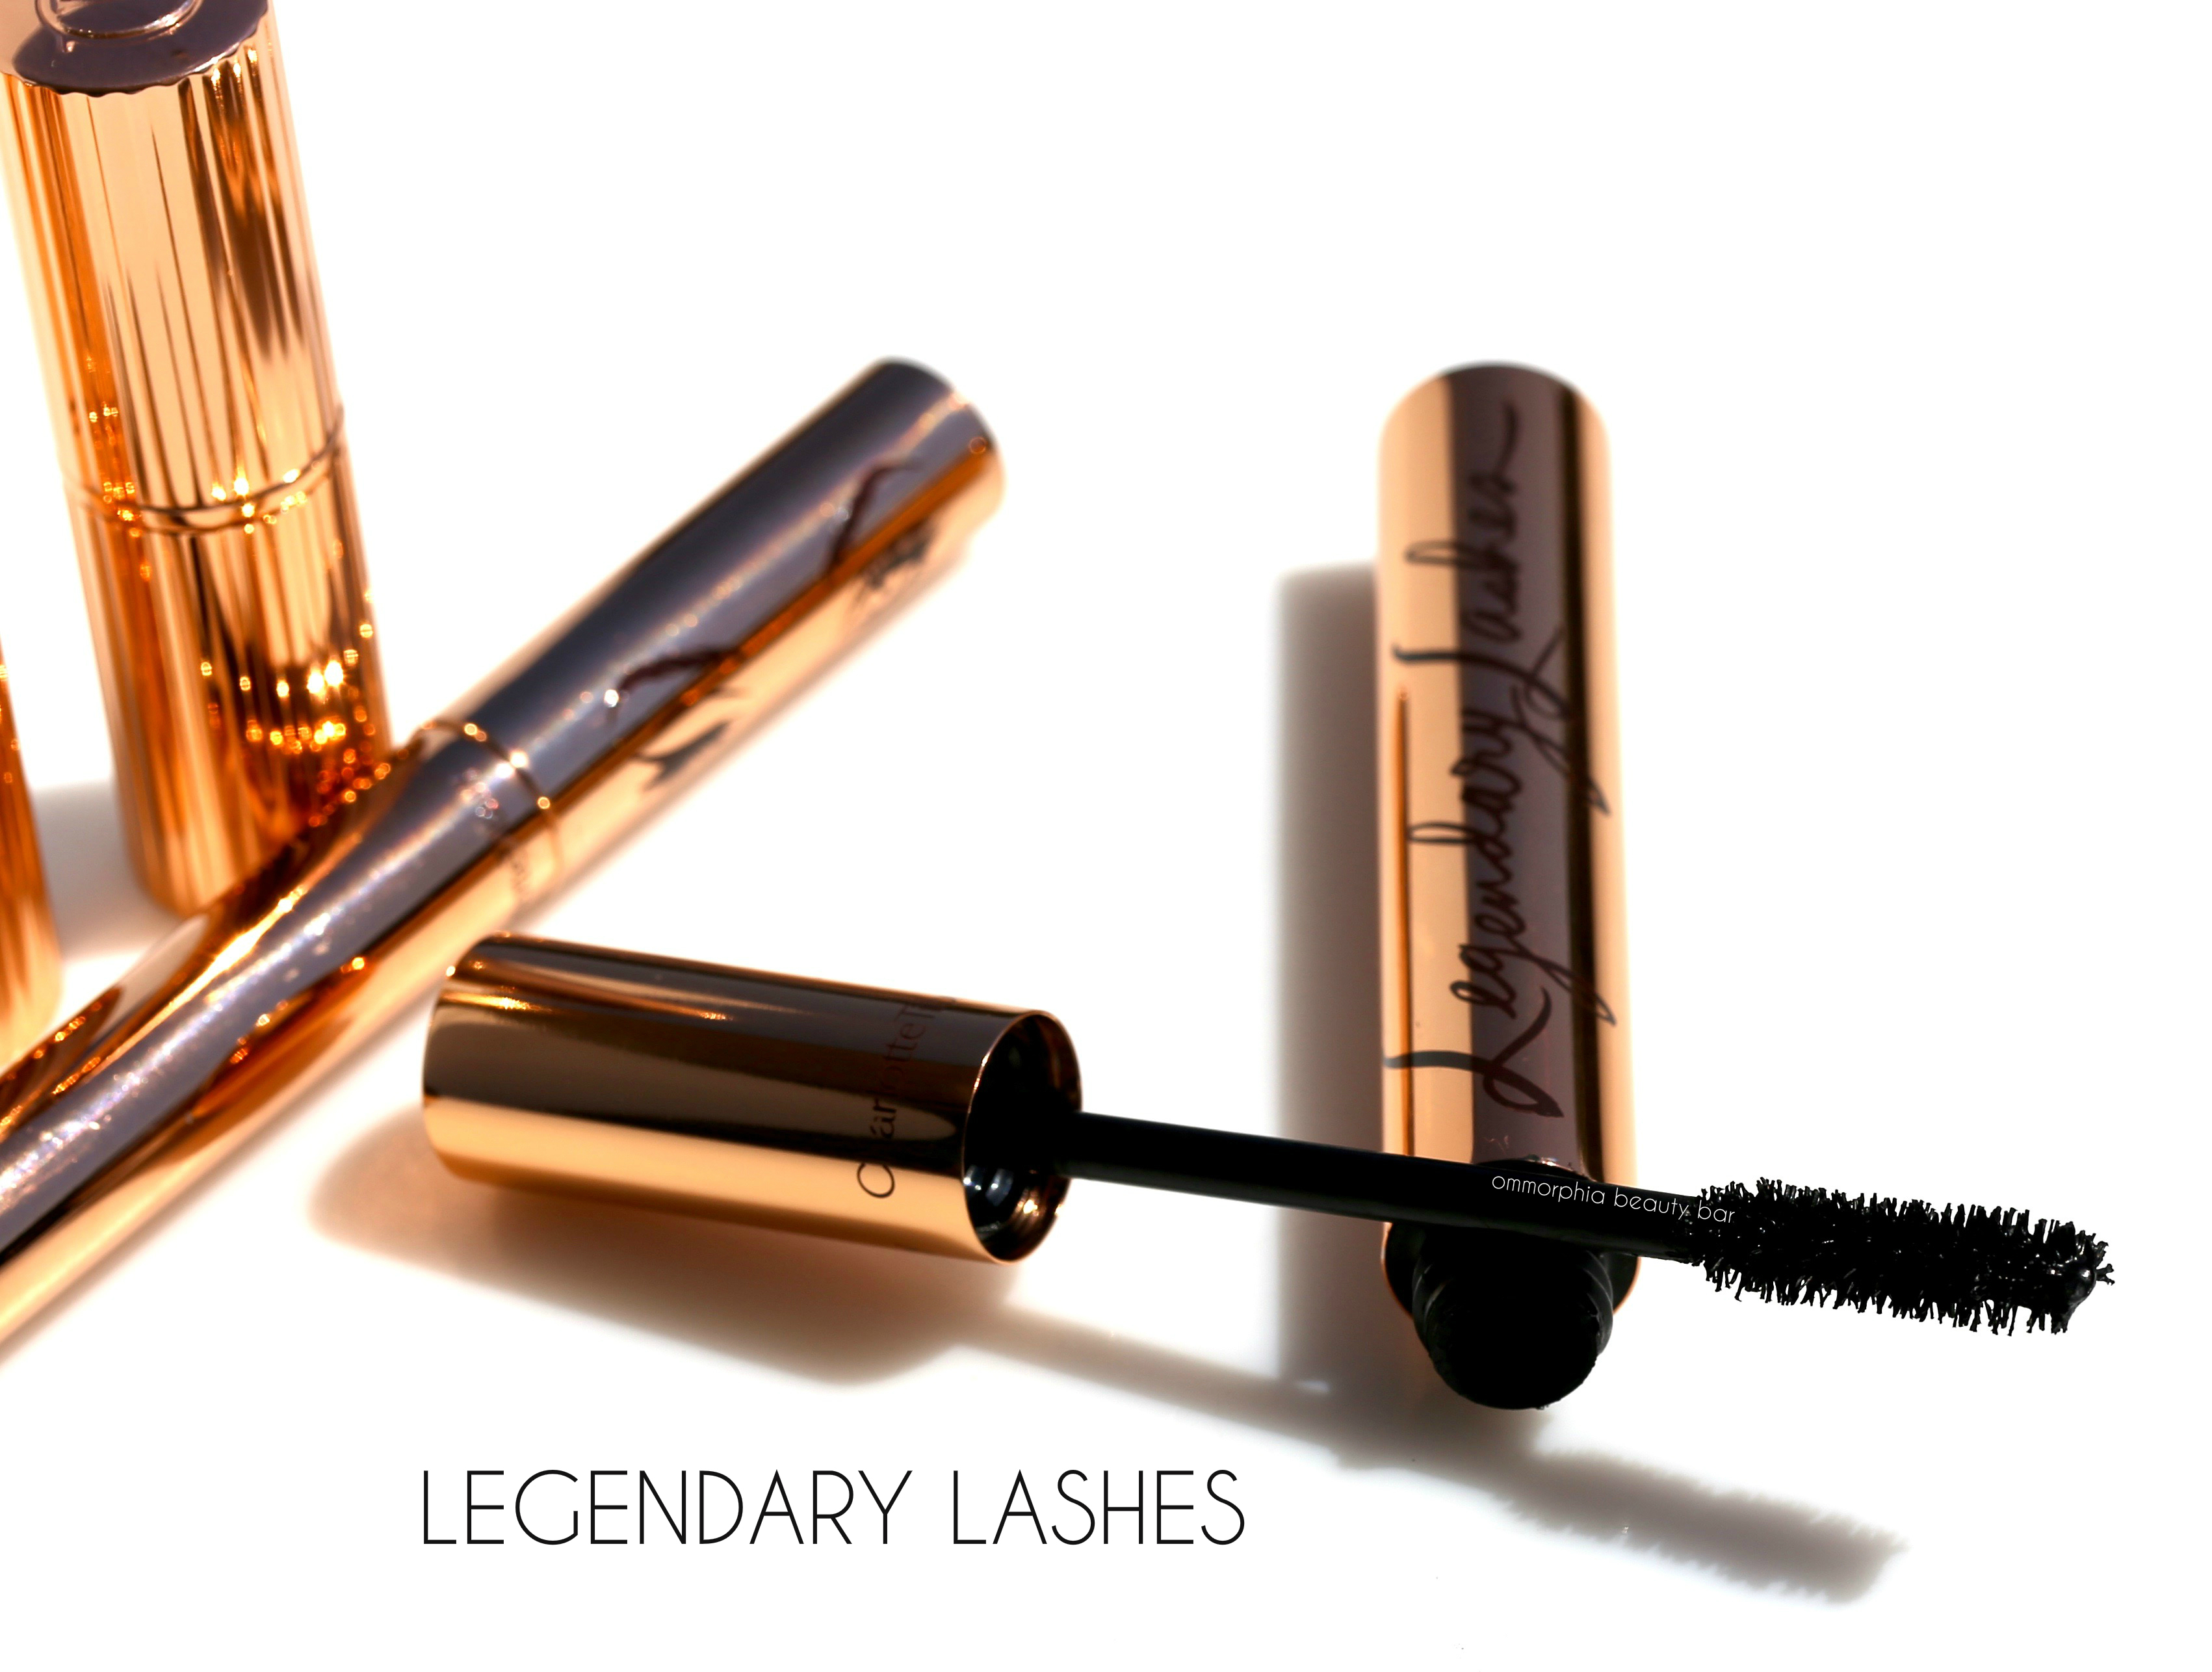 Charlotte Tilbury Legendary Lashes Mascara Brows Hot Zoya Volumizer Lash Black Vinyl Can 3800 With Flirty Eyes Printed On The Tube And Signature Rose Gold Casing This Was Created To